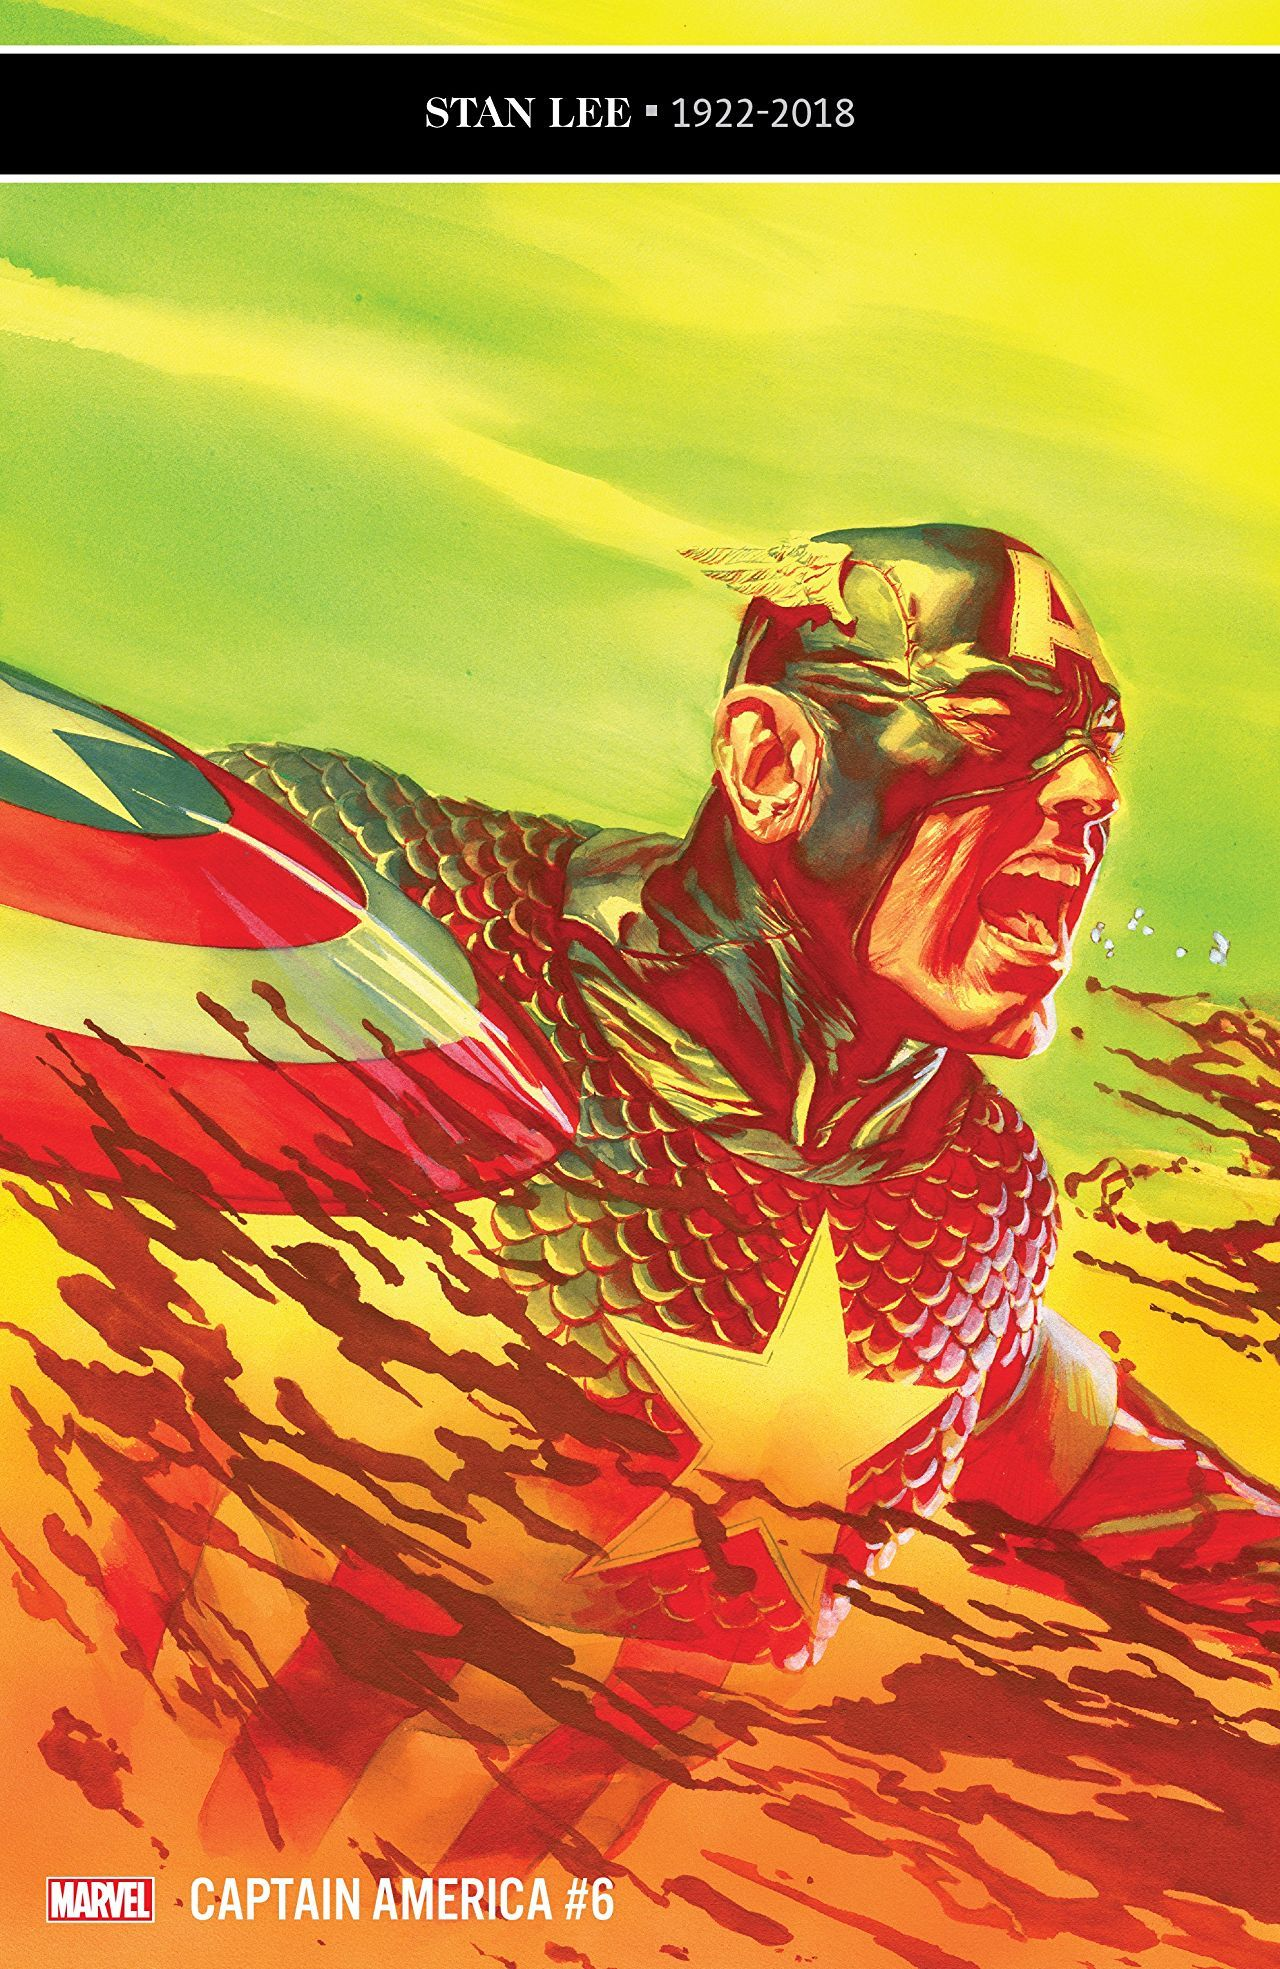 Captain America #6 review: Not so enchanting